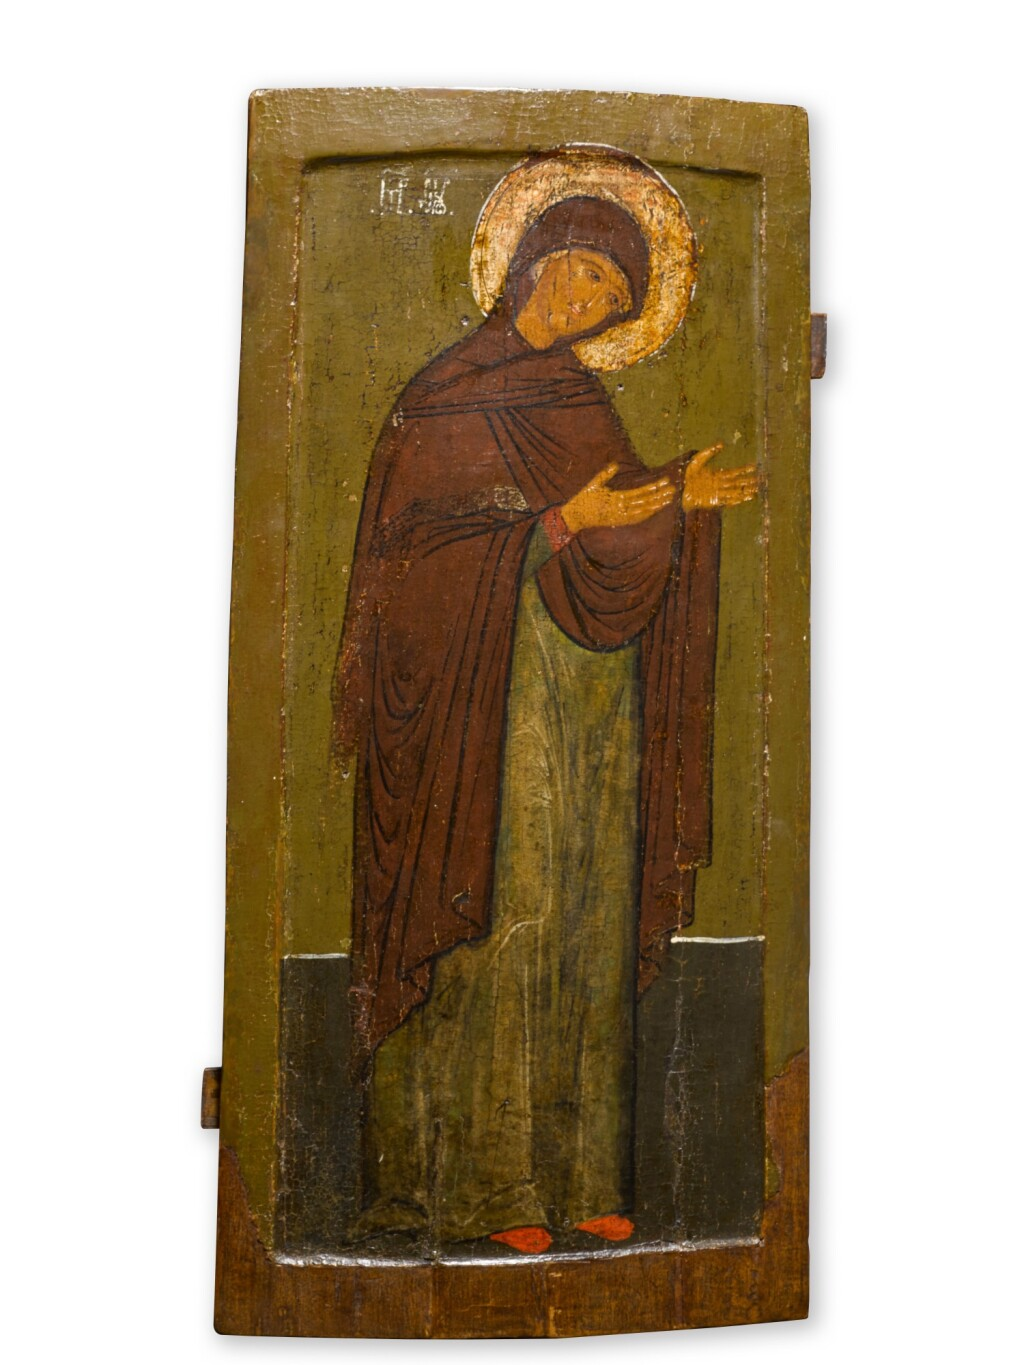 AN ICON OF THE MOTHER OF GOD FROM A DEESIS, RUSSIAN, 17TH CENTURY